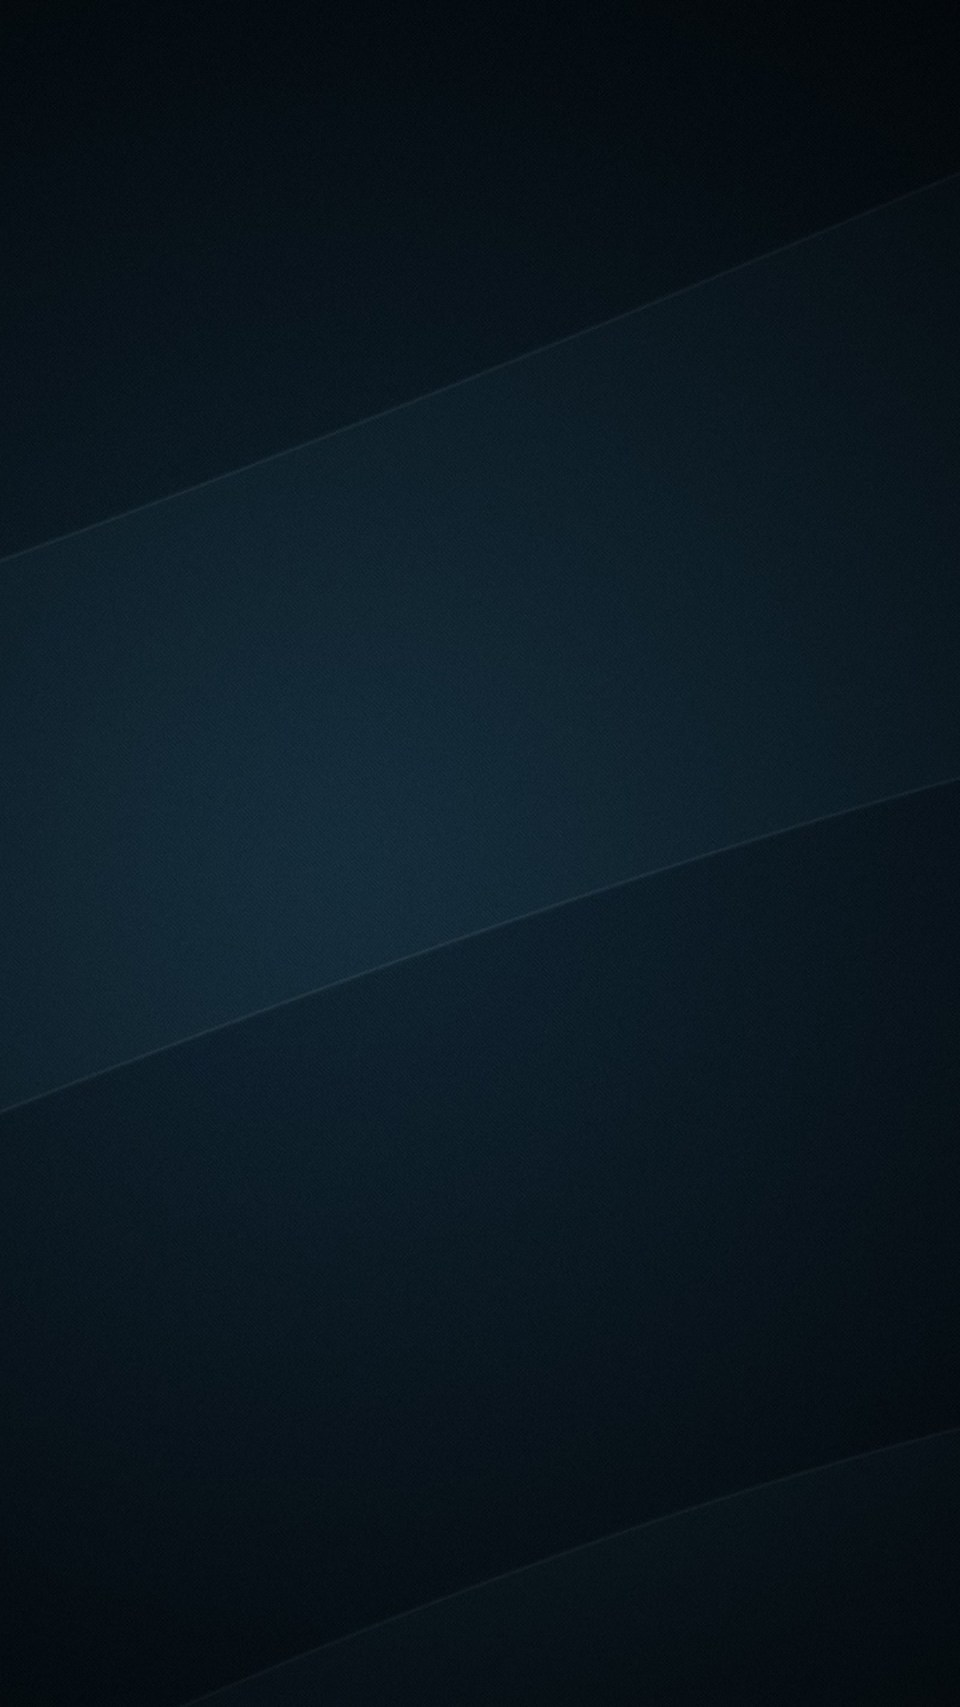 Dark Blue Htc One M8 Wallpapers Hd 1080x1920